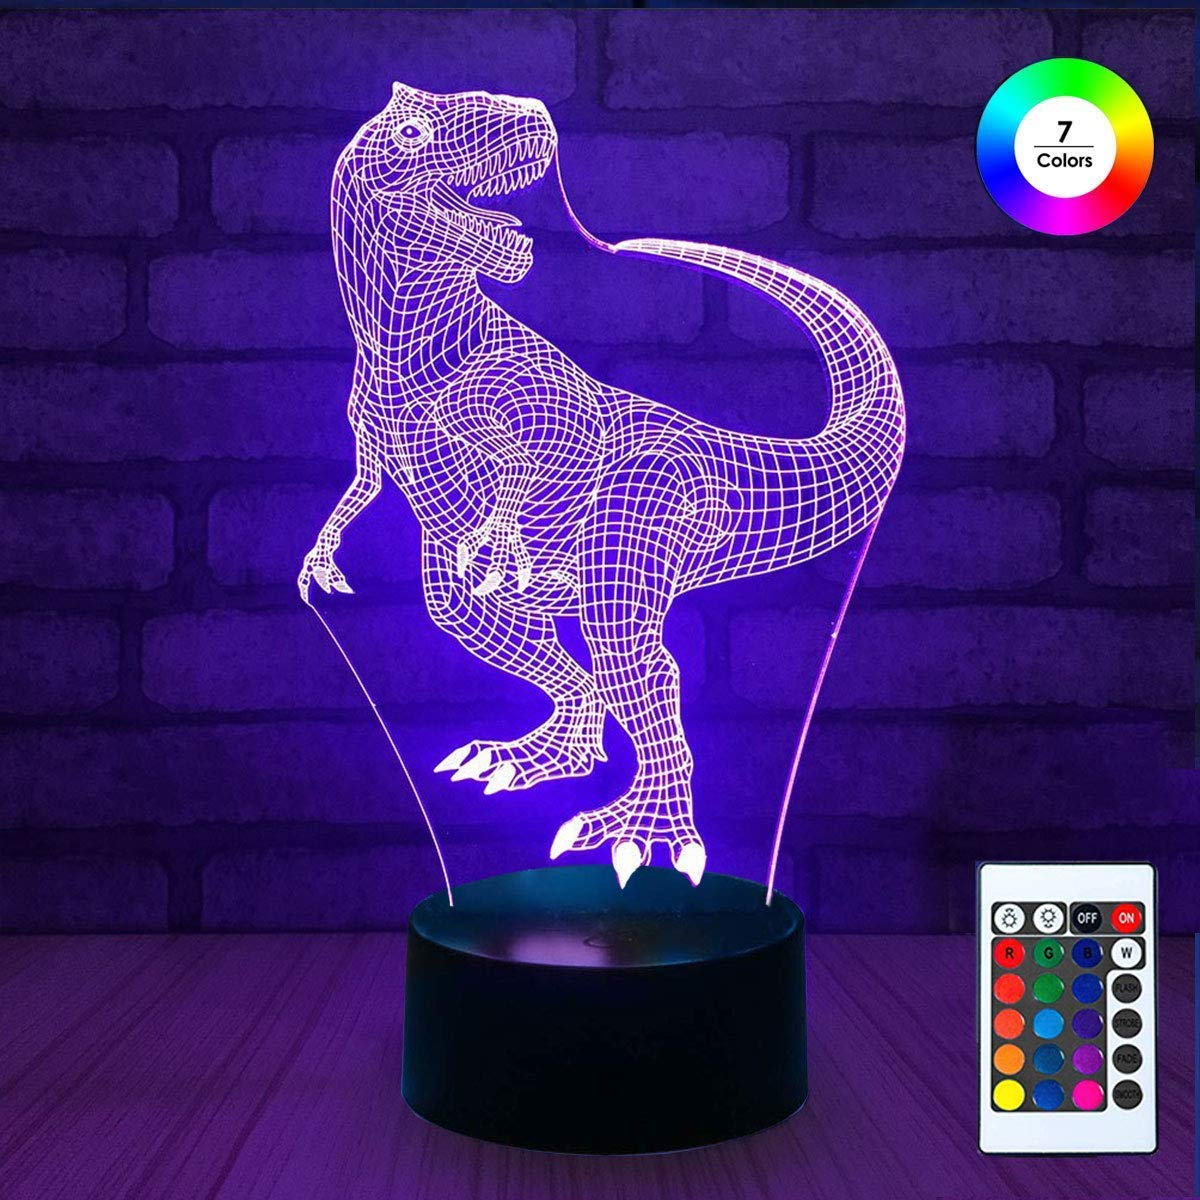 3D Remote Night Stand Light, EpicGadget Touch Control Optical Illusion  Visualization LED Night Light Lamp 7 Colors Changing Remote Control Night  Light